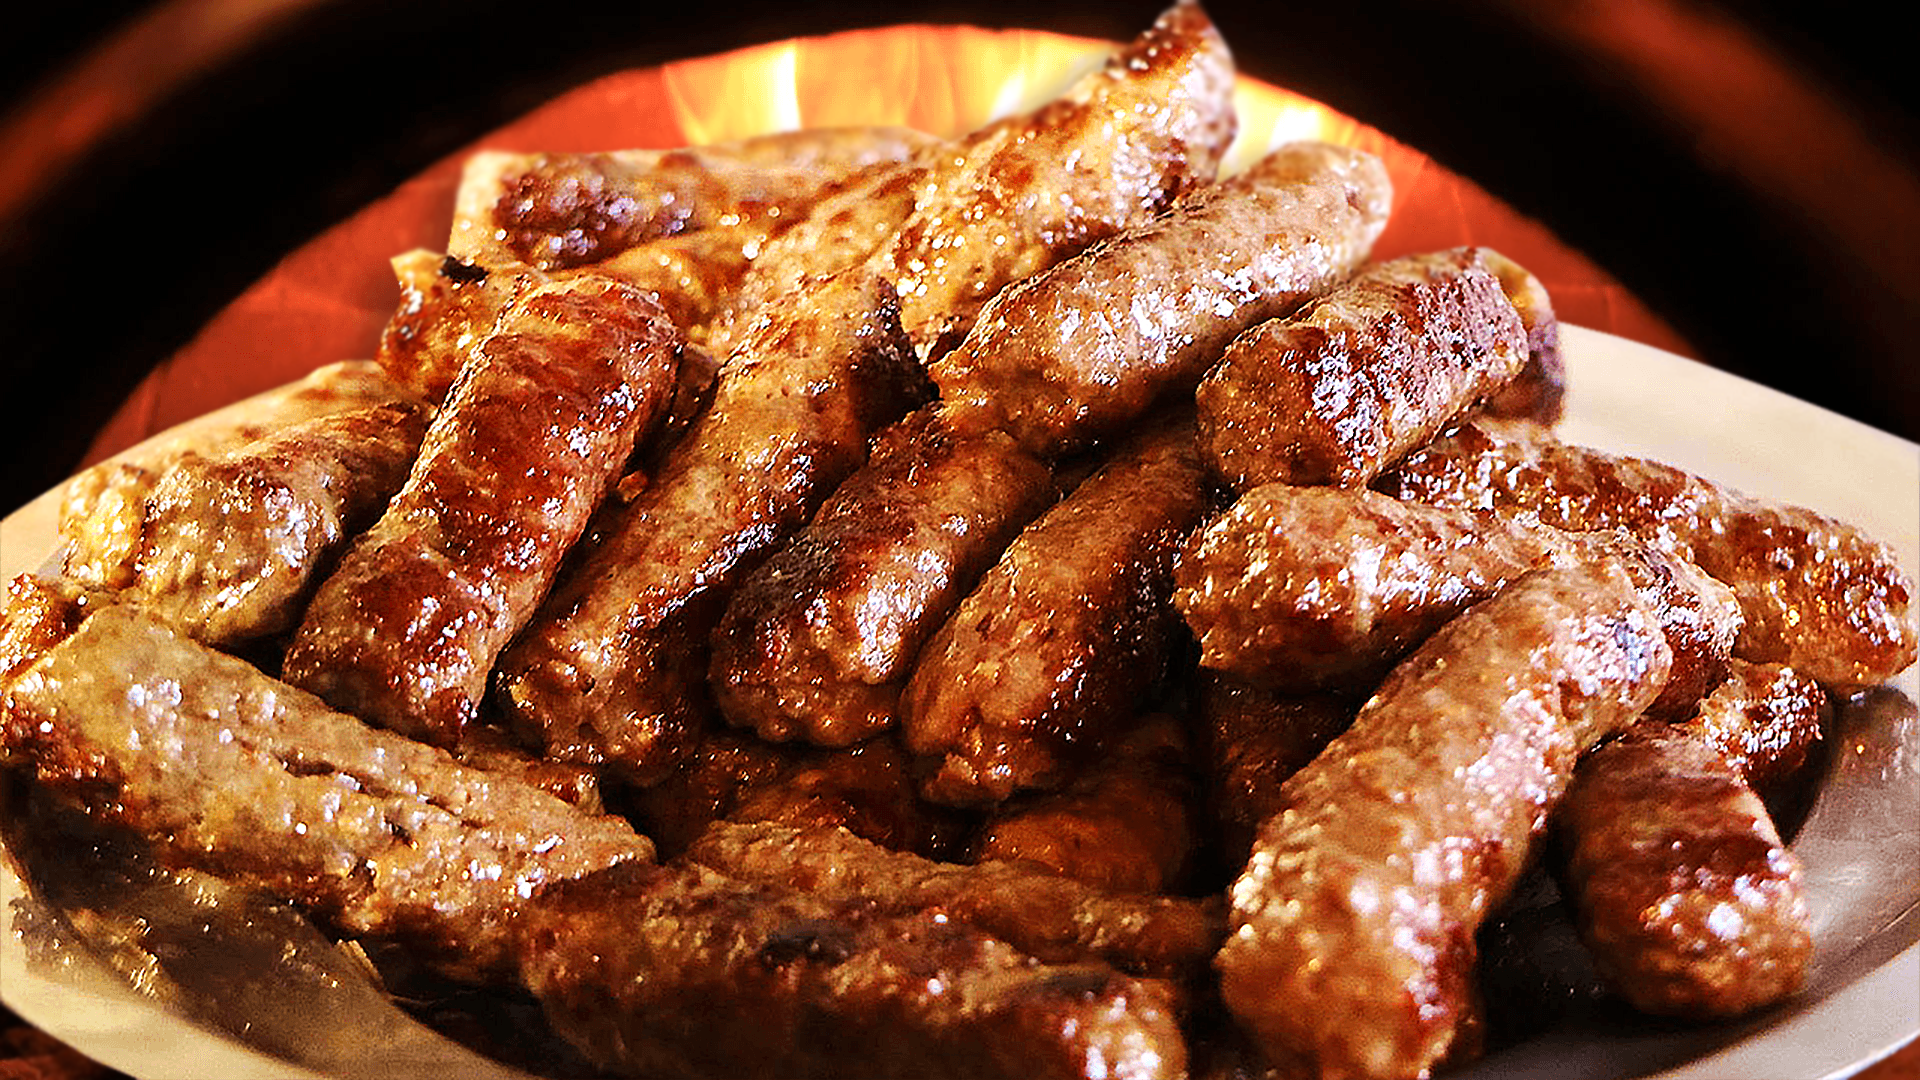 Grilled Cevapi Recipe - Skinless Sausages